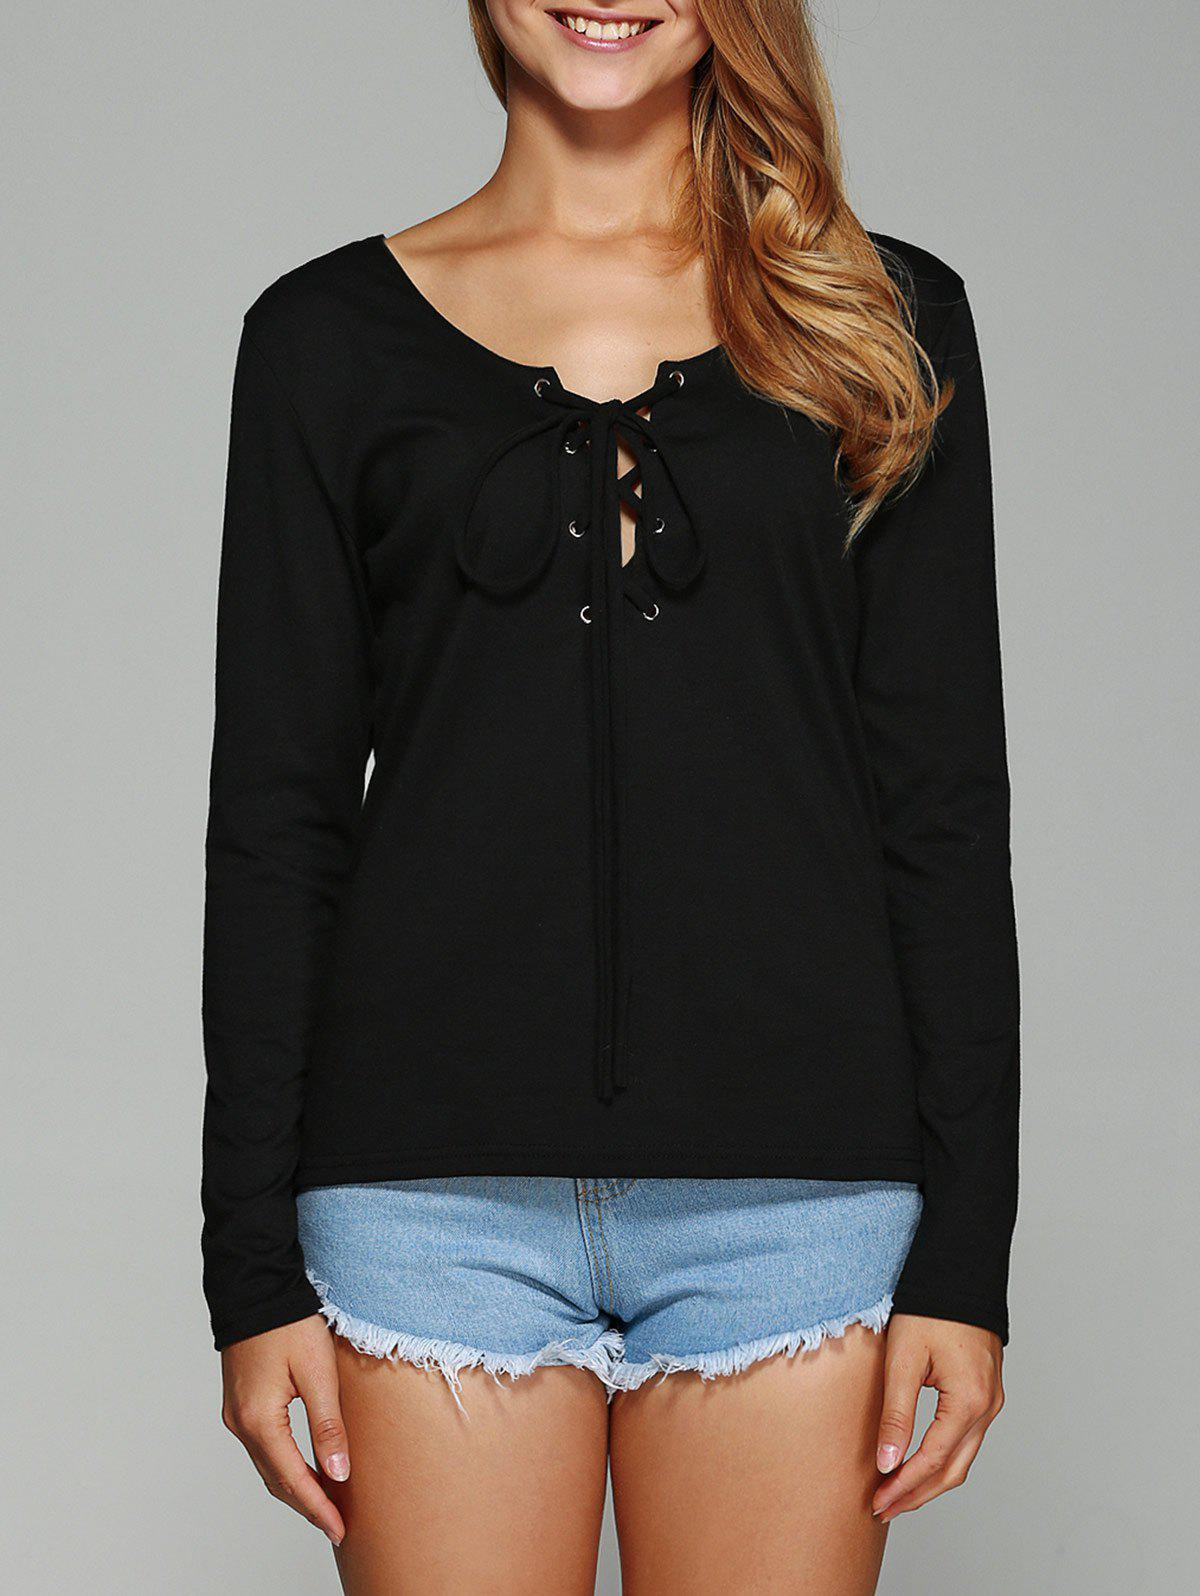 Lace-Up Plain Slimming T-Shirt - BLACK L